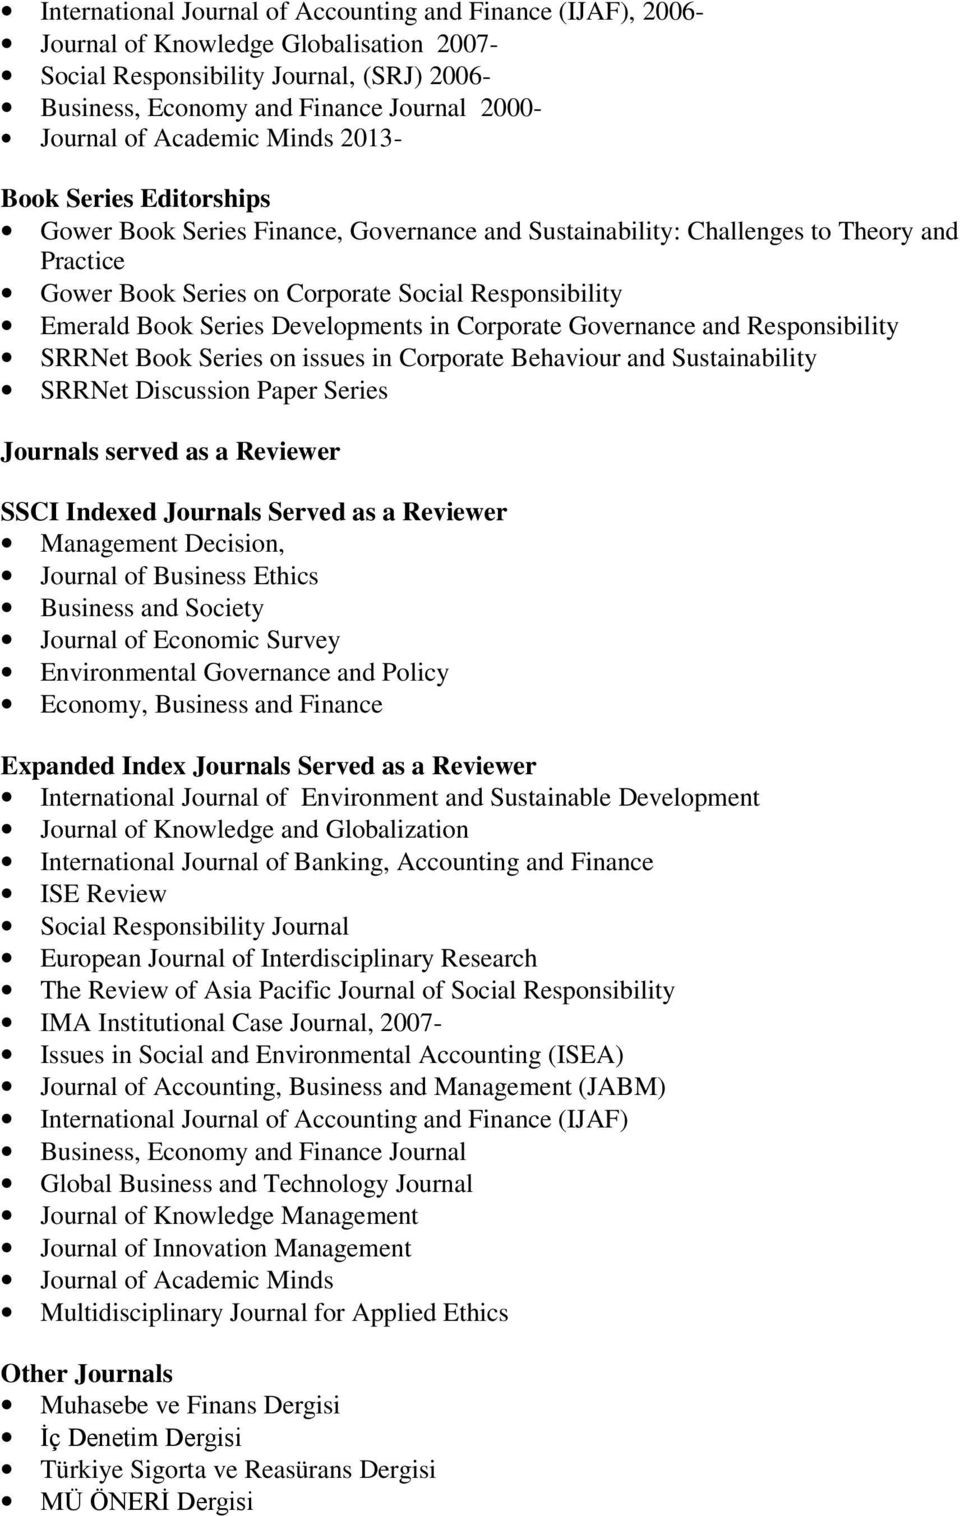 Emerald Book Series Developments in Corporate Governance and Responsibility SRRNet Book Series on issues in Corporate Behaviour and Sustainability SRRNet Discussion Paper Series Journals served as a